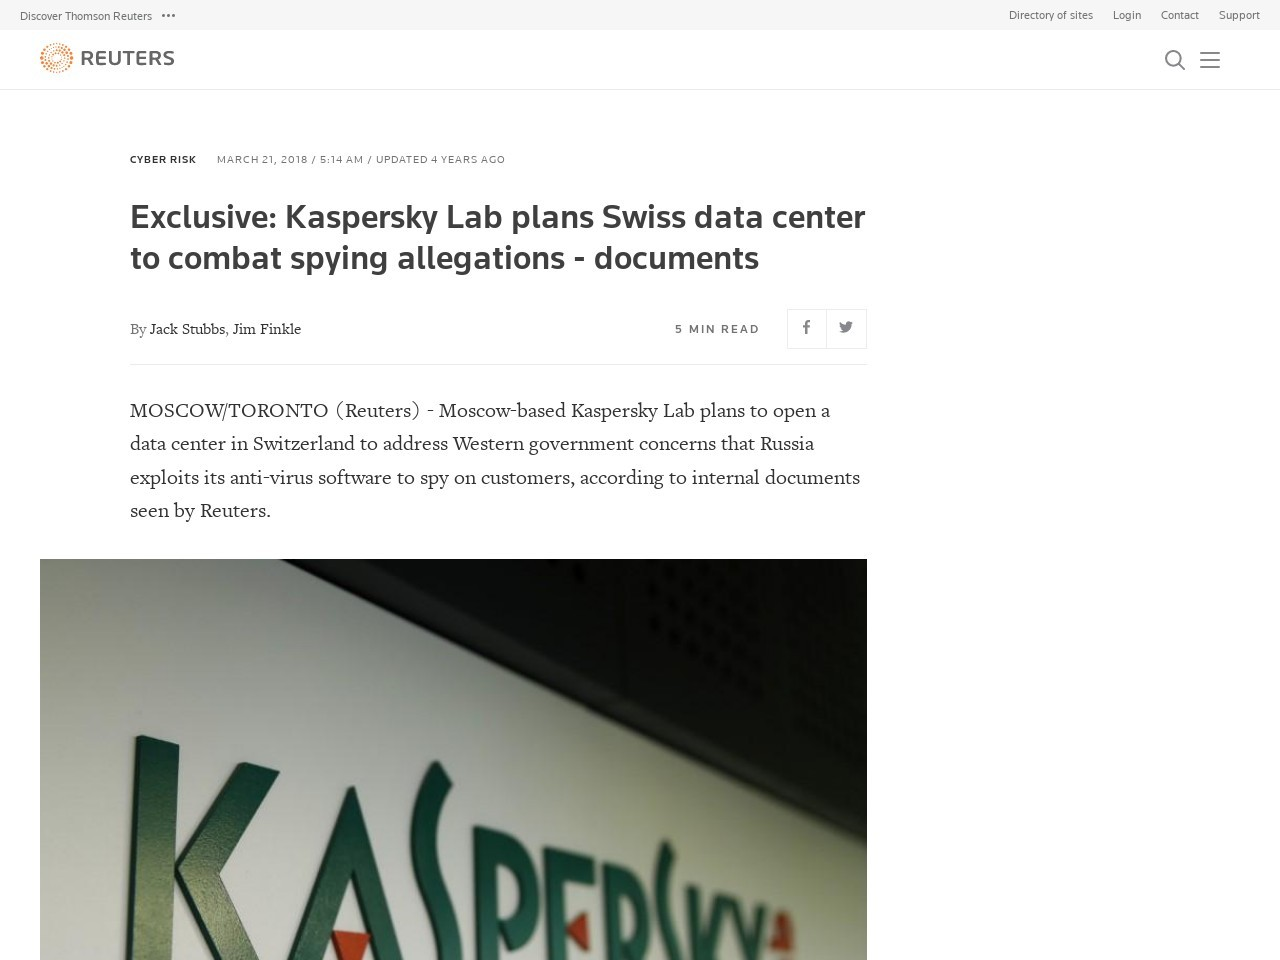 Exclusive: Kaspersky Lab plans Swiss data center to combat spying allegations – documents